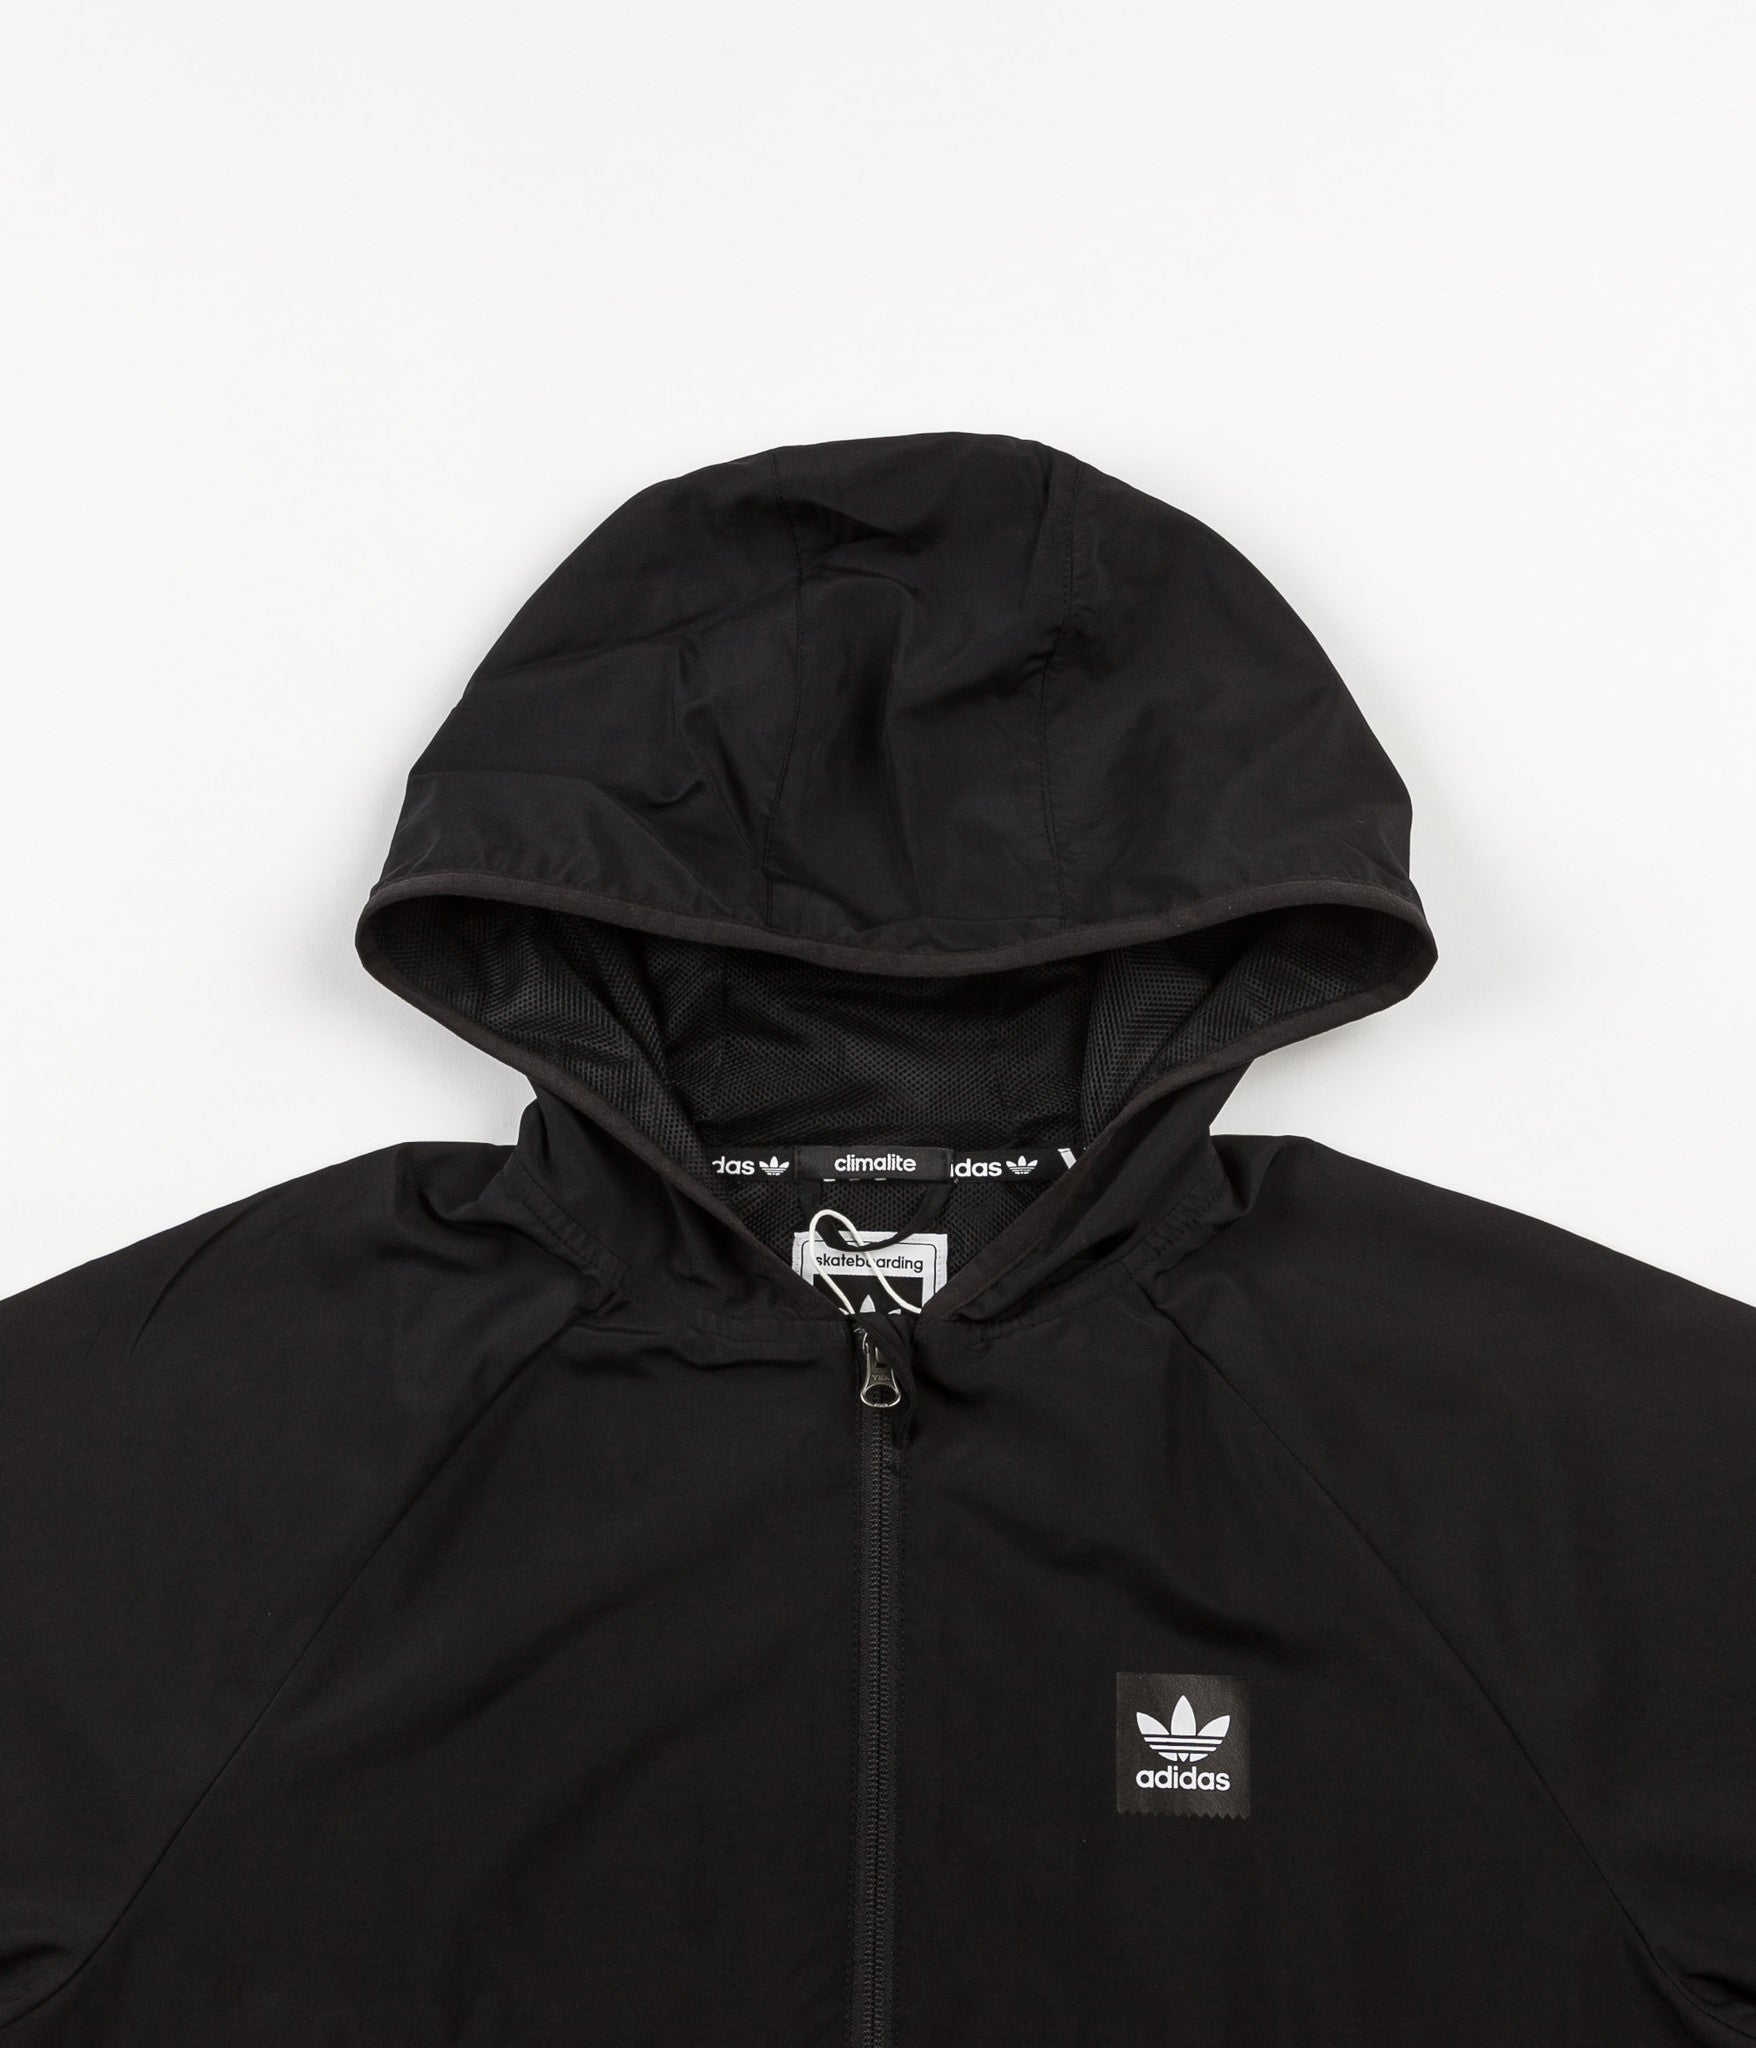 premium selection a0026 d544a Adidas Blackbird Windbreaker Jacket - Black   Carbon ...